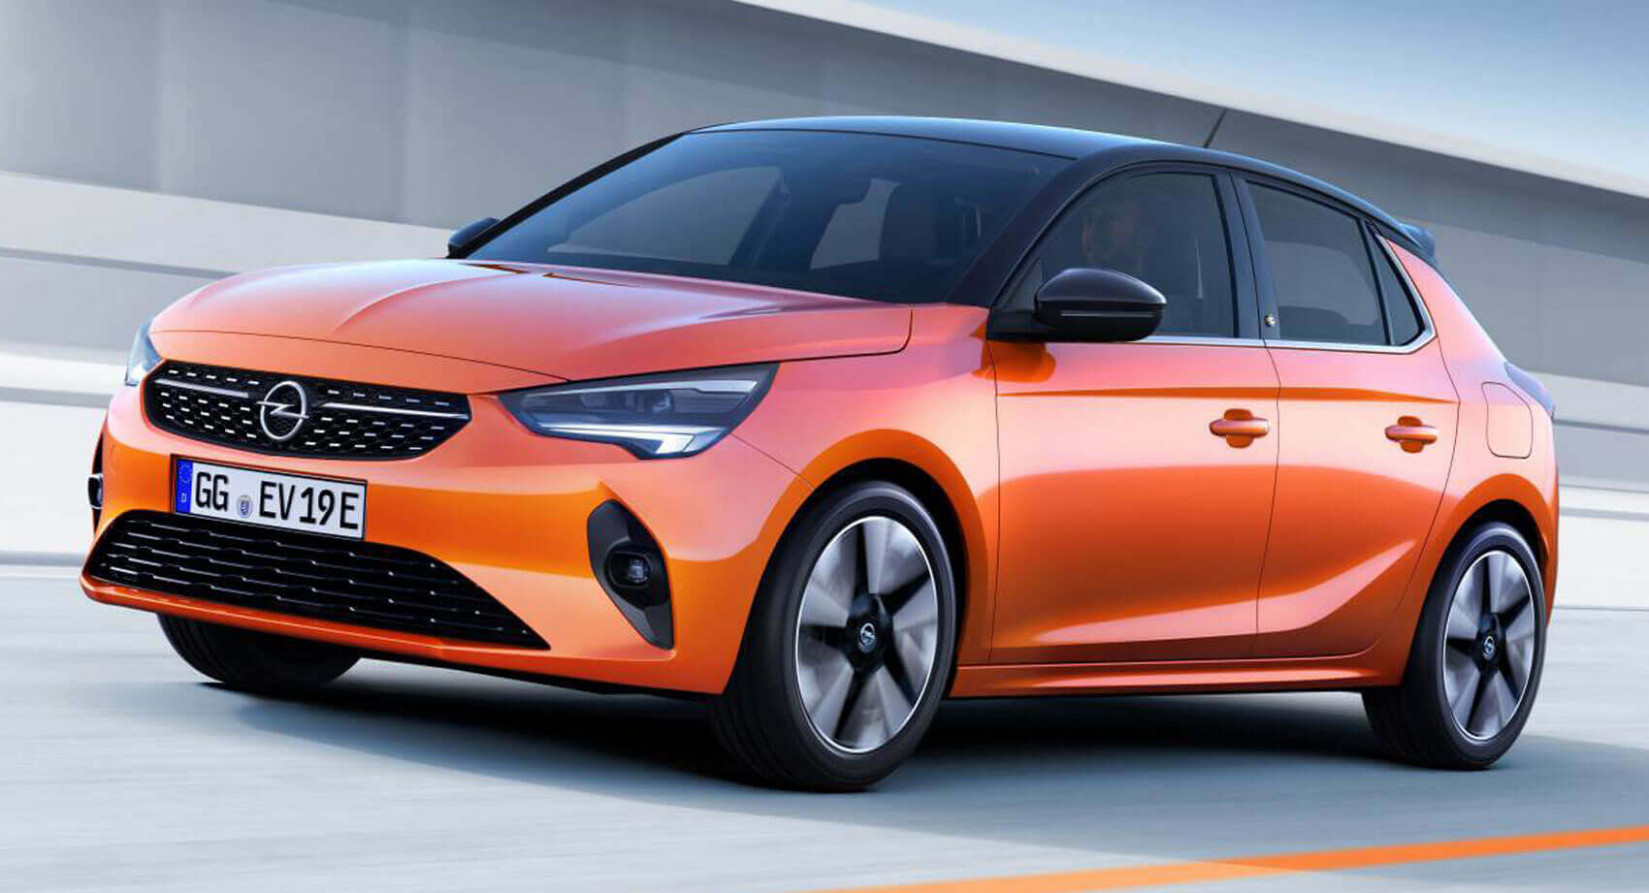 Redesign and Concept Opel Will Launch Full-Electric Corsa In 2022